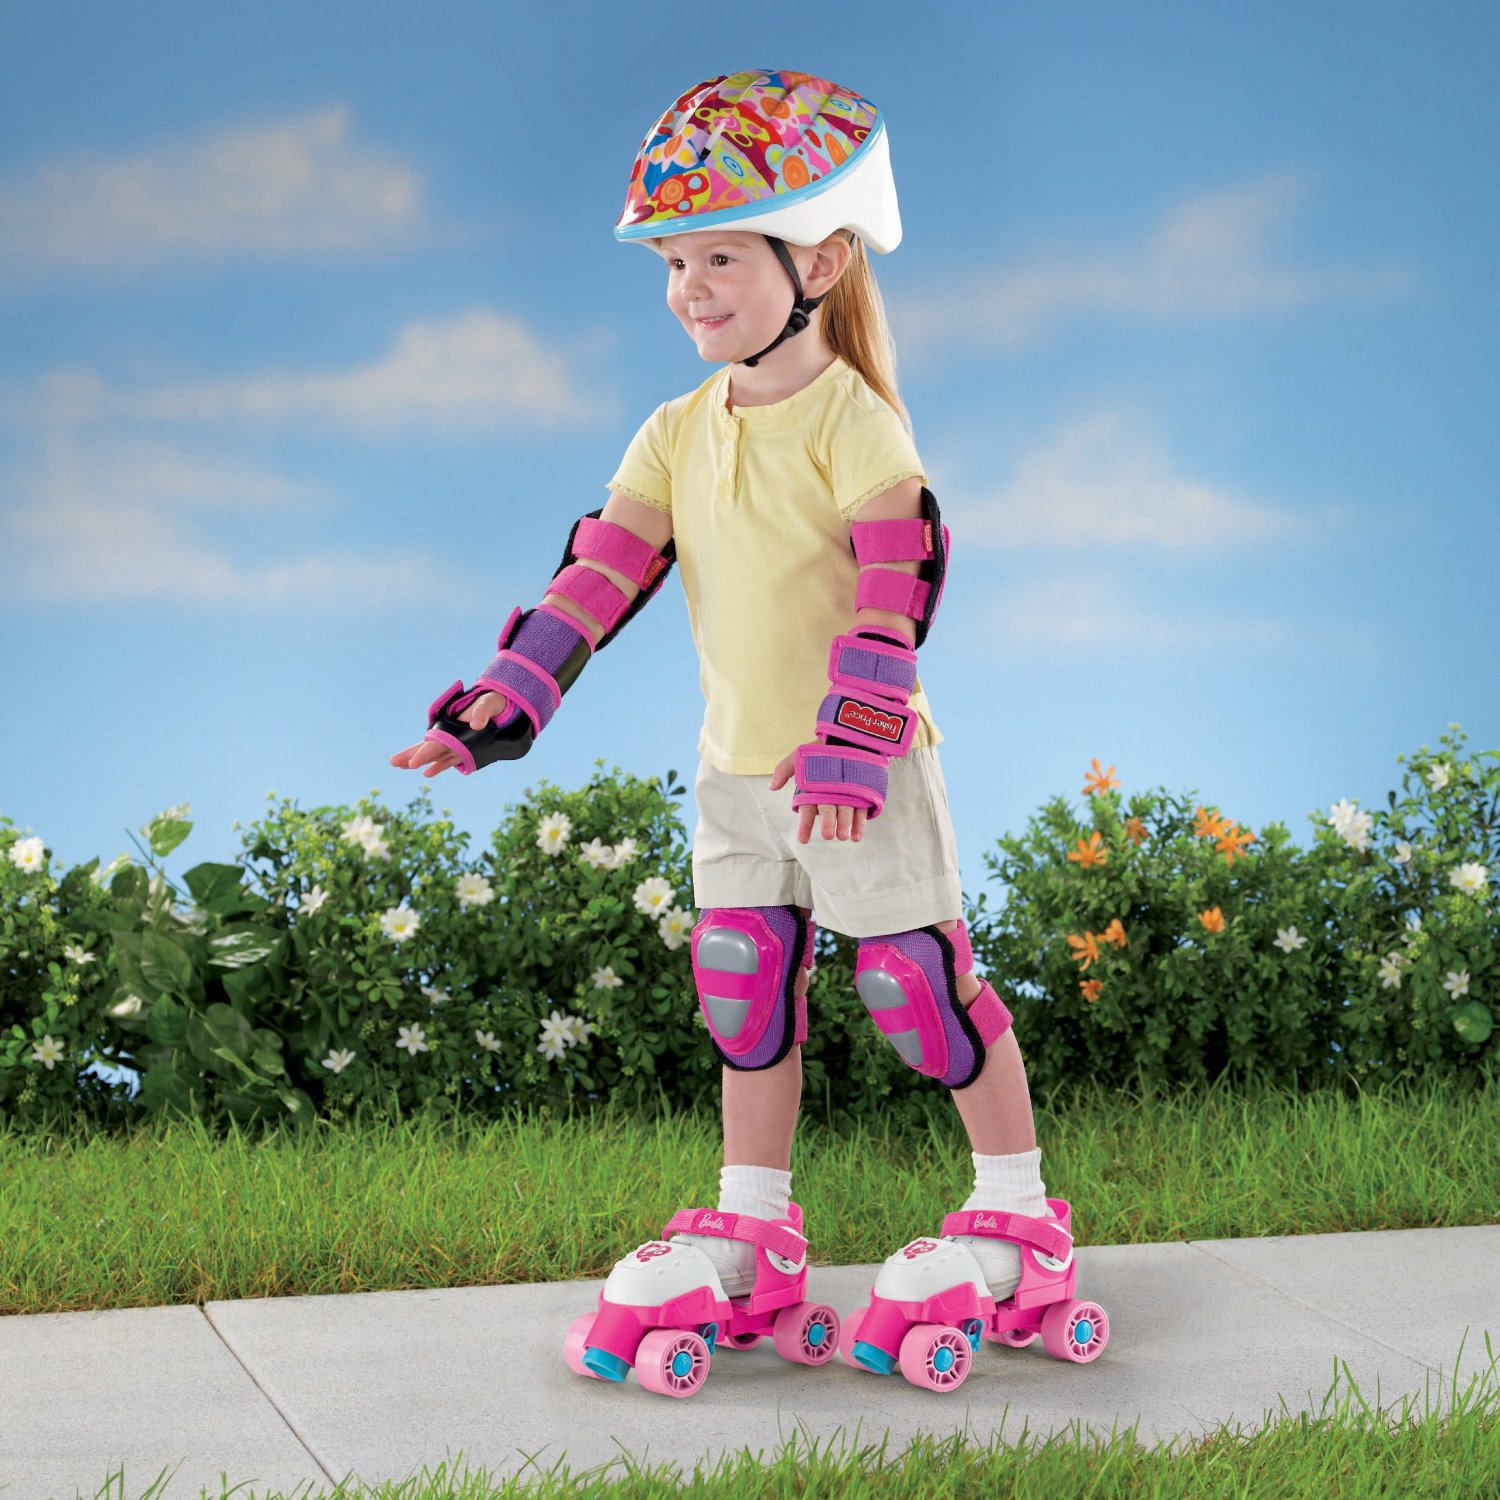 Roller skates under 20 dollars - Amazon Com Fisher Price Grow With Me 1 2 3 Roller Skates Pink Toys Games